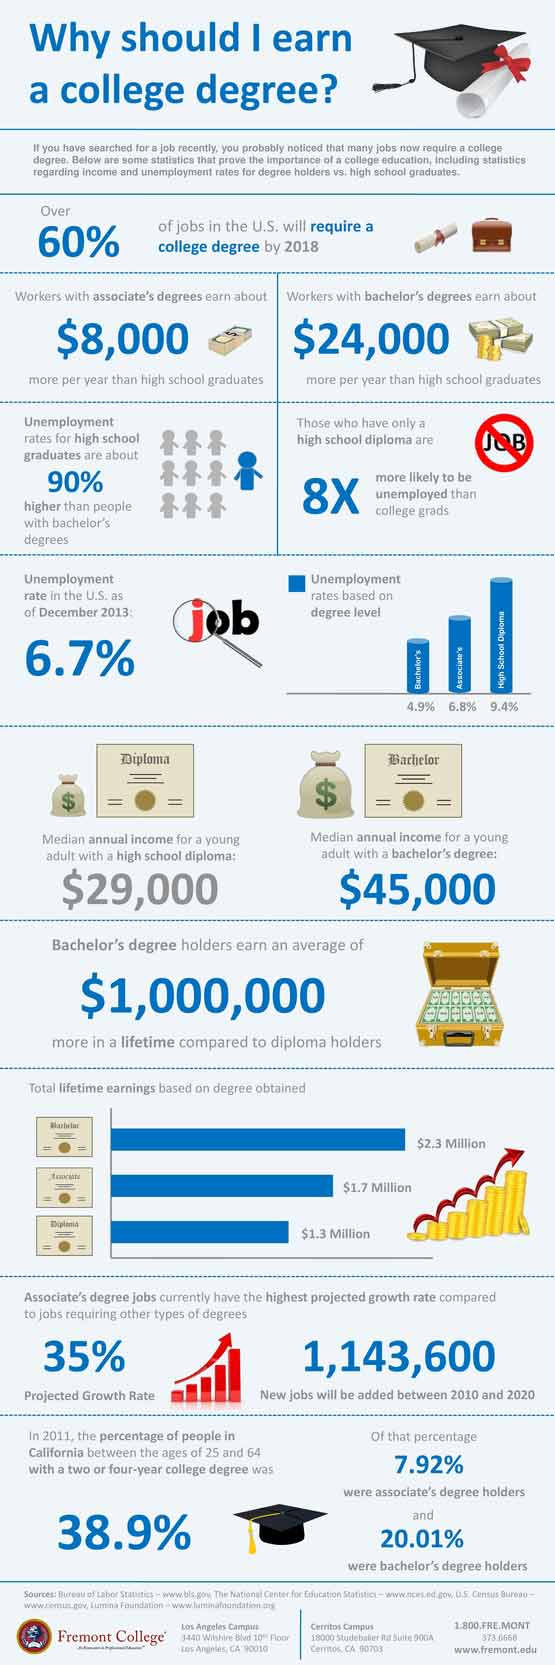 Why should I earn a college degree Infographic - Reasons to earn a college degree